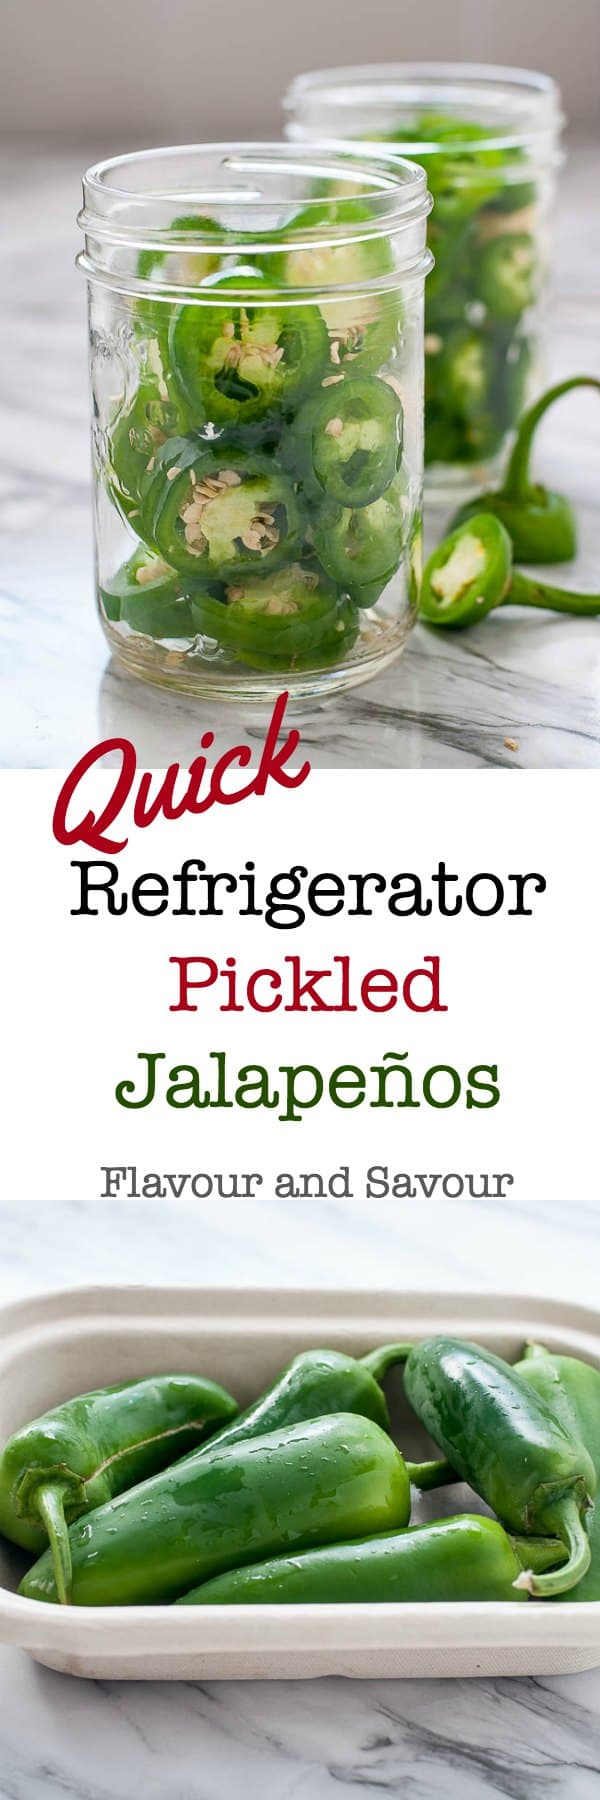 Pinterest Pin for Quick Refrigerator Pickled Jalapeños by Flavour and Savour